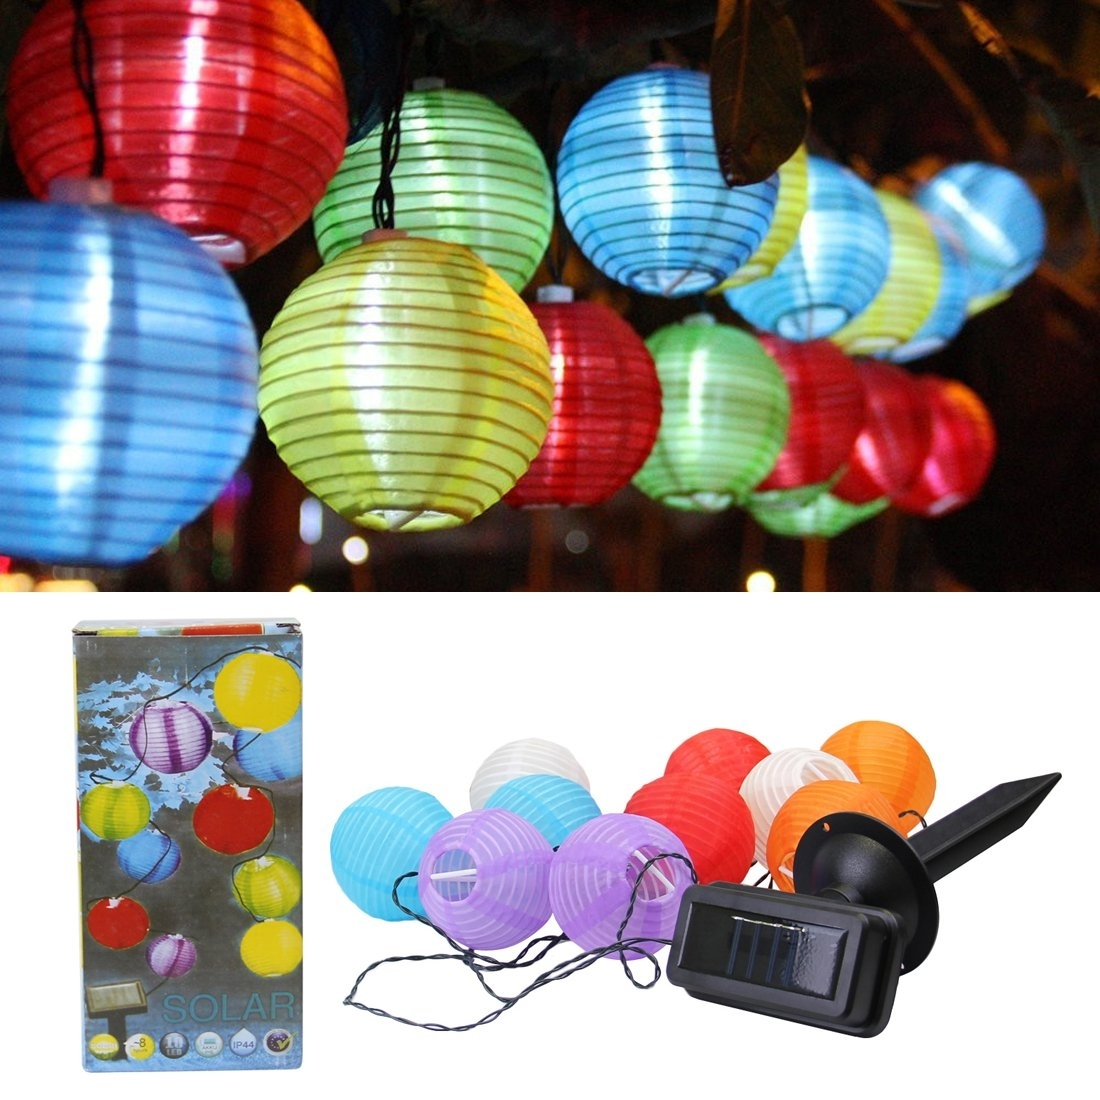 Cheap Solar Powered Lanterns Outdoor, Find Solar Powered Lanterns Intended For Colorful Outdoor Lanterns (View 6 of 20)